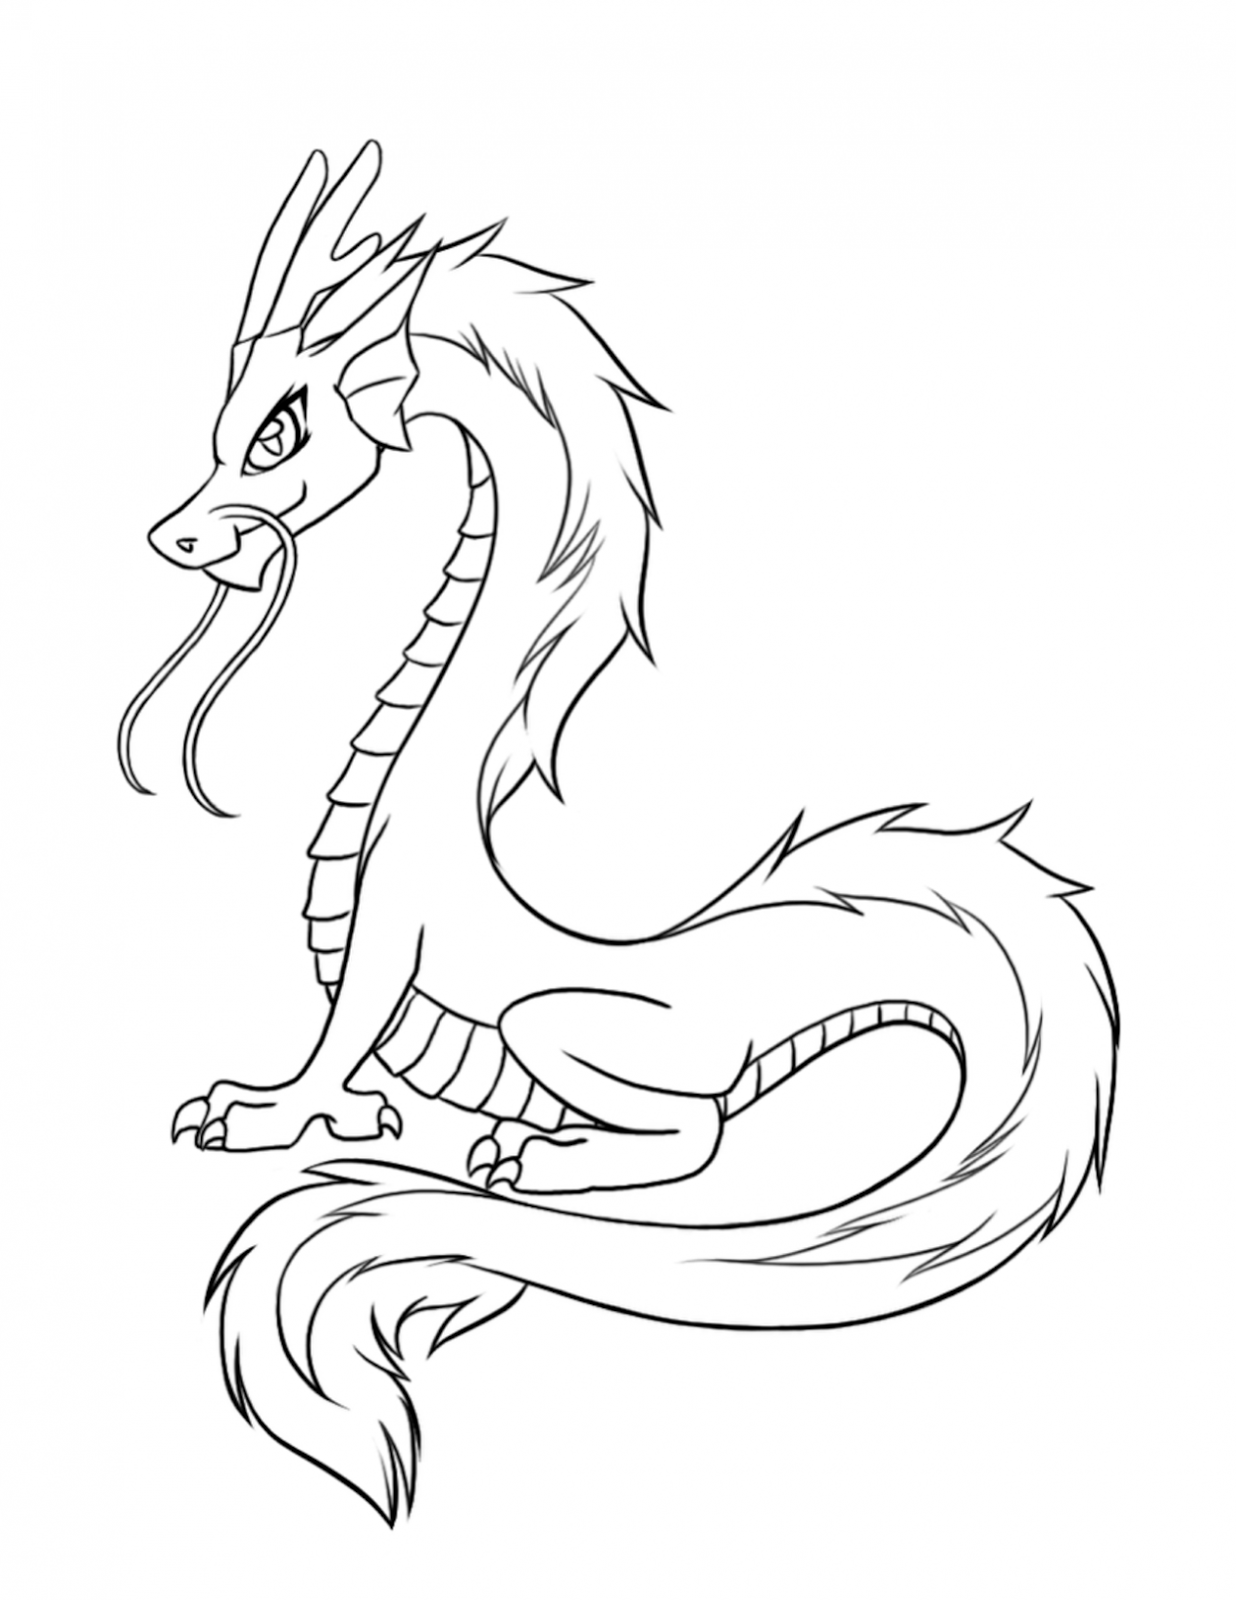 dragon coloring pages free - photo#25